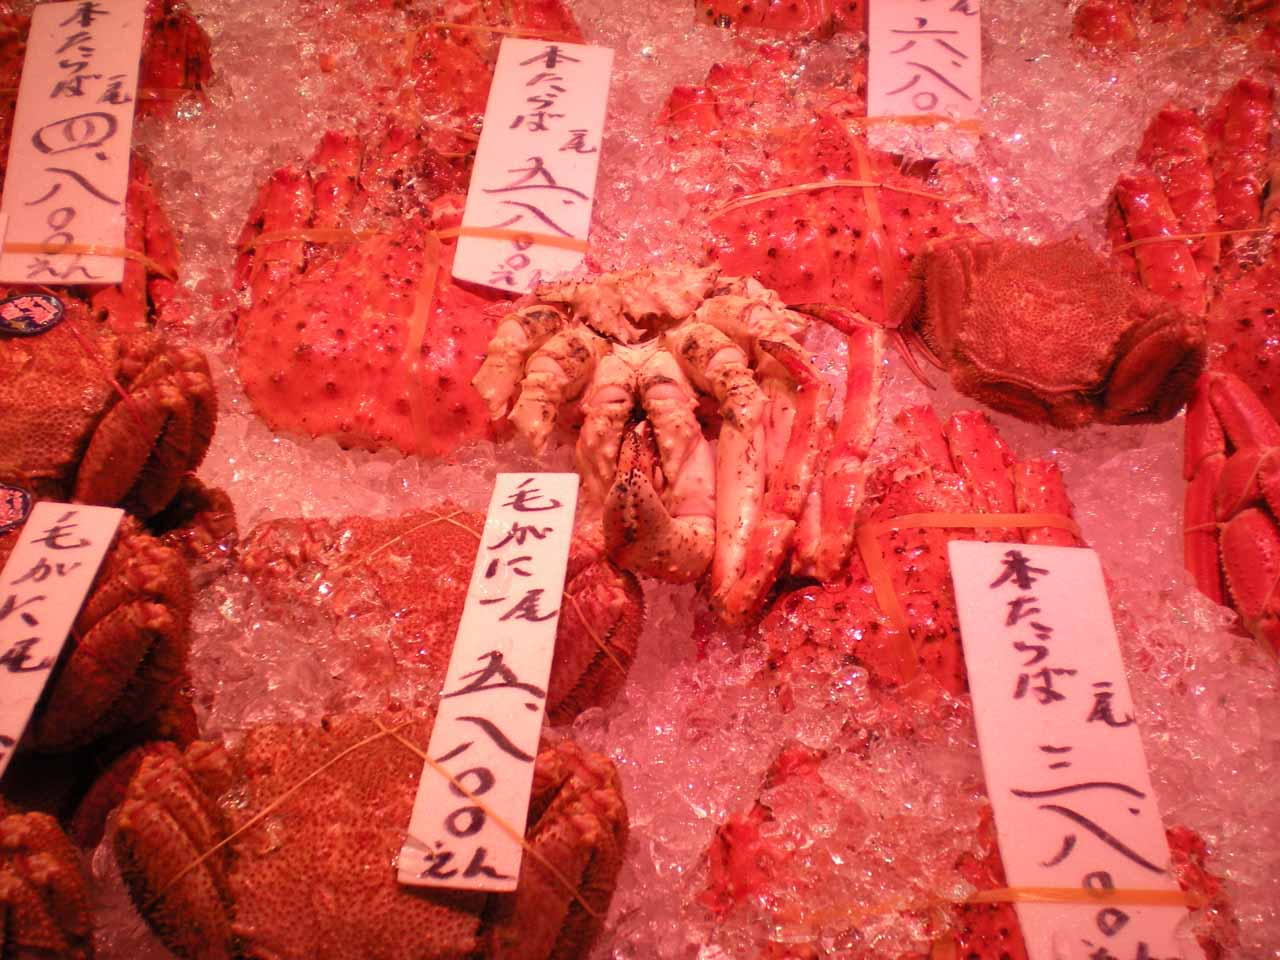 Some fresh crabs for sale